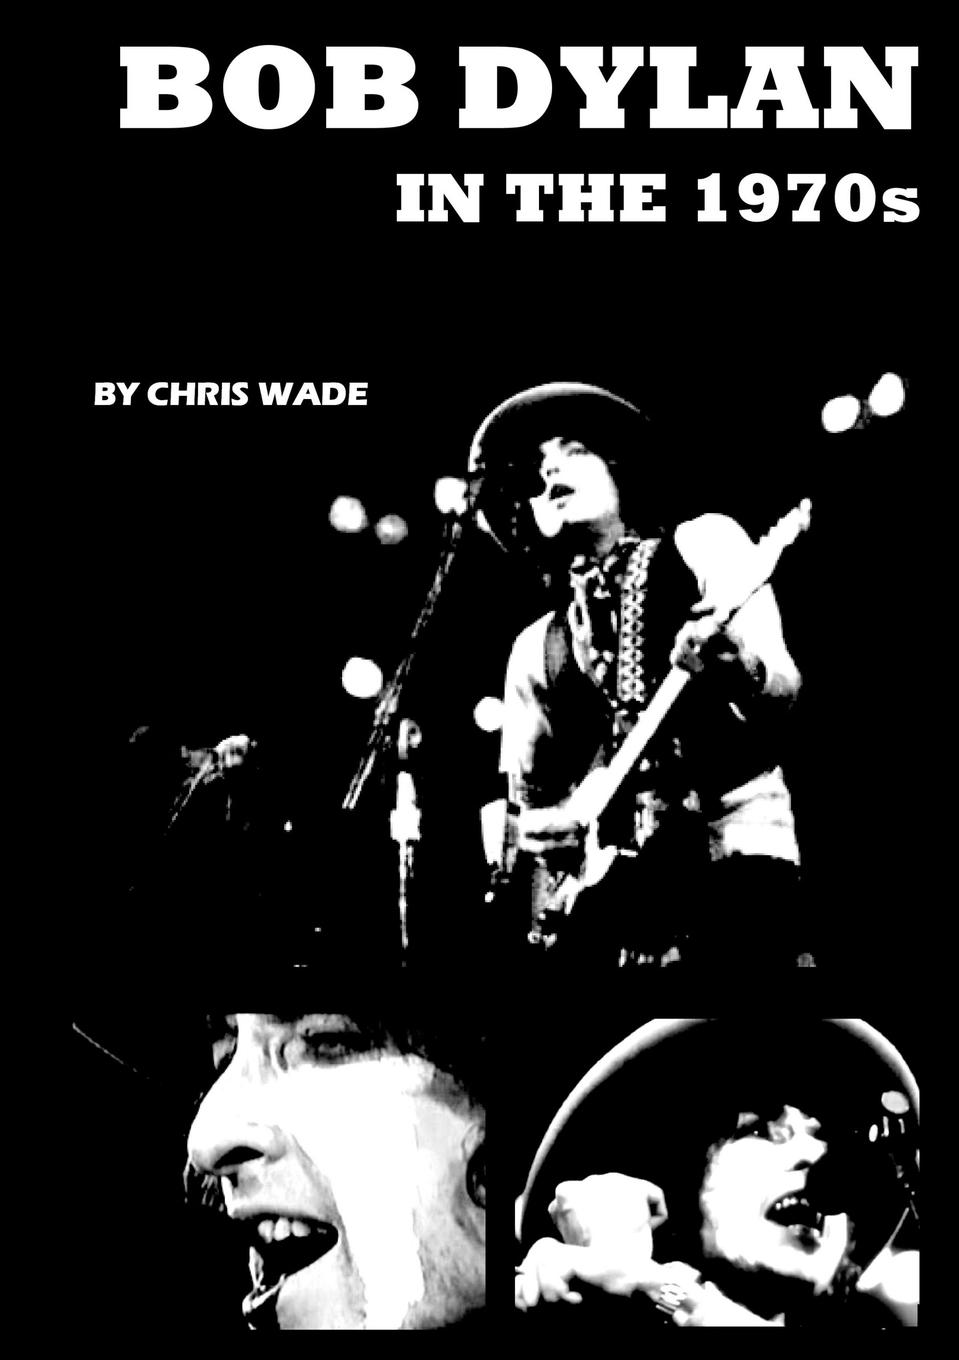 chris wade Bob Dylan in the 1970s watanabe wade o practical flatfish culture and stock enhancement